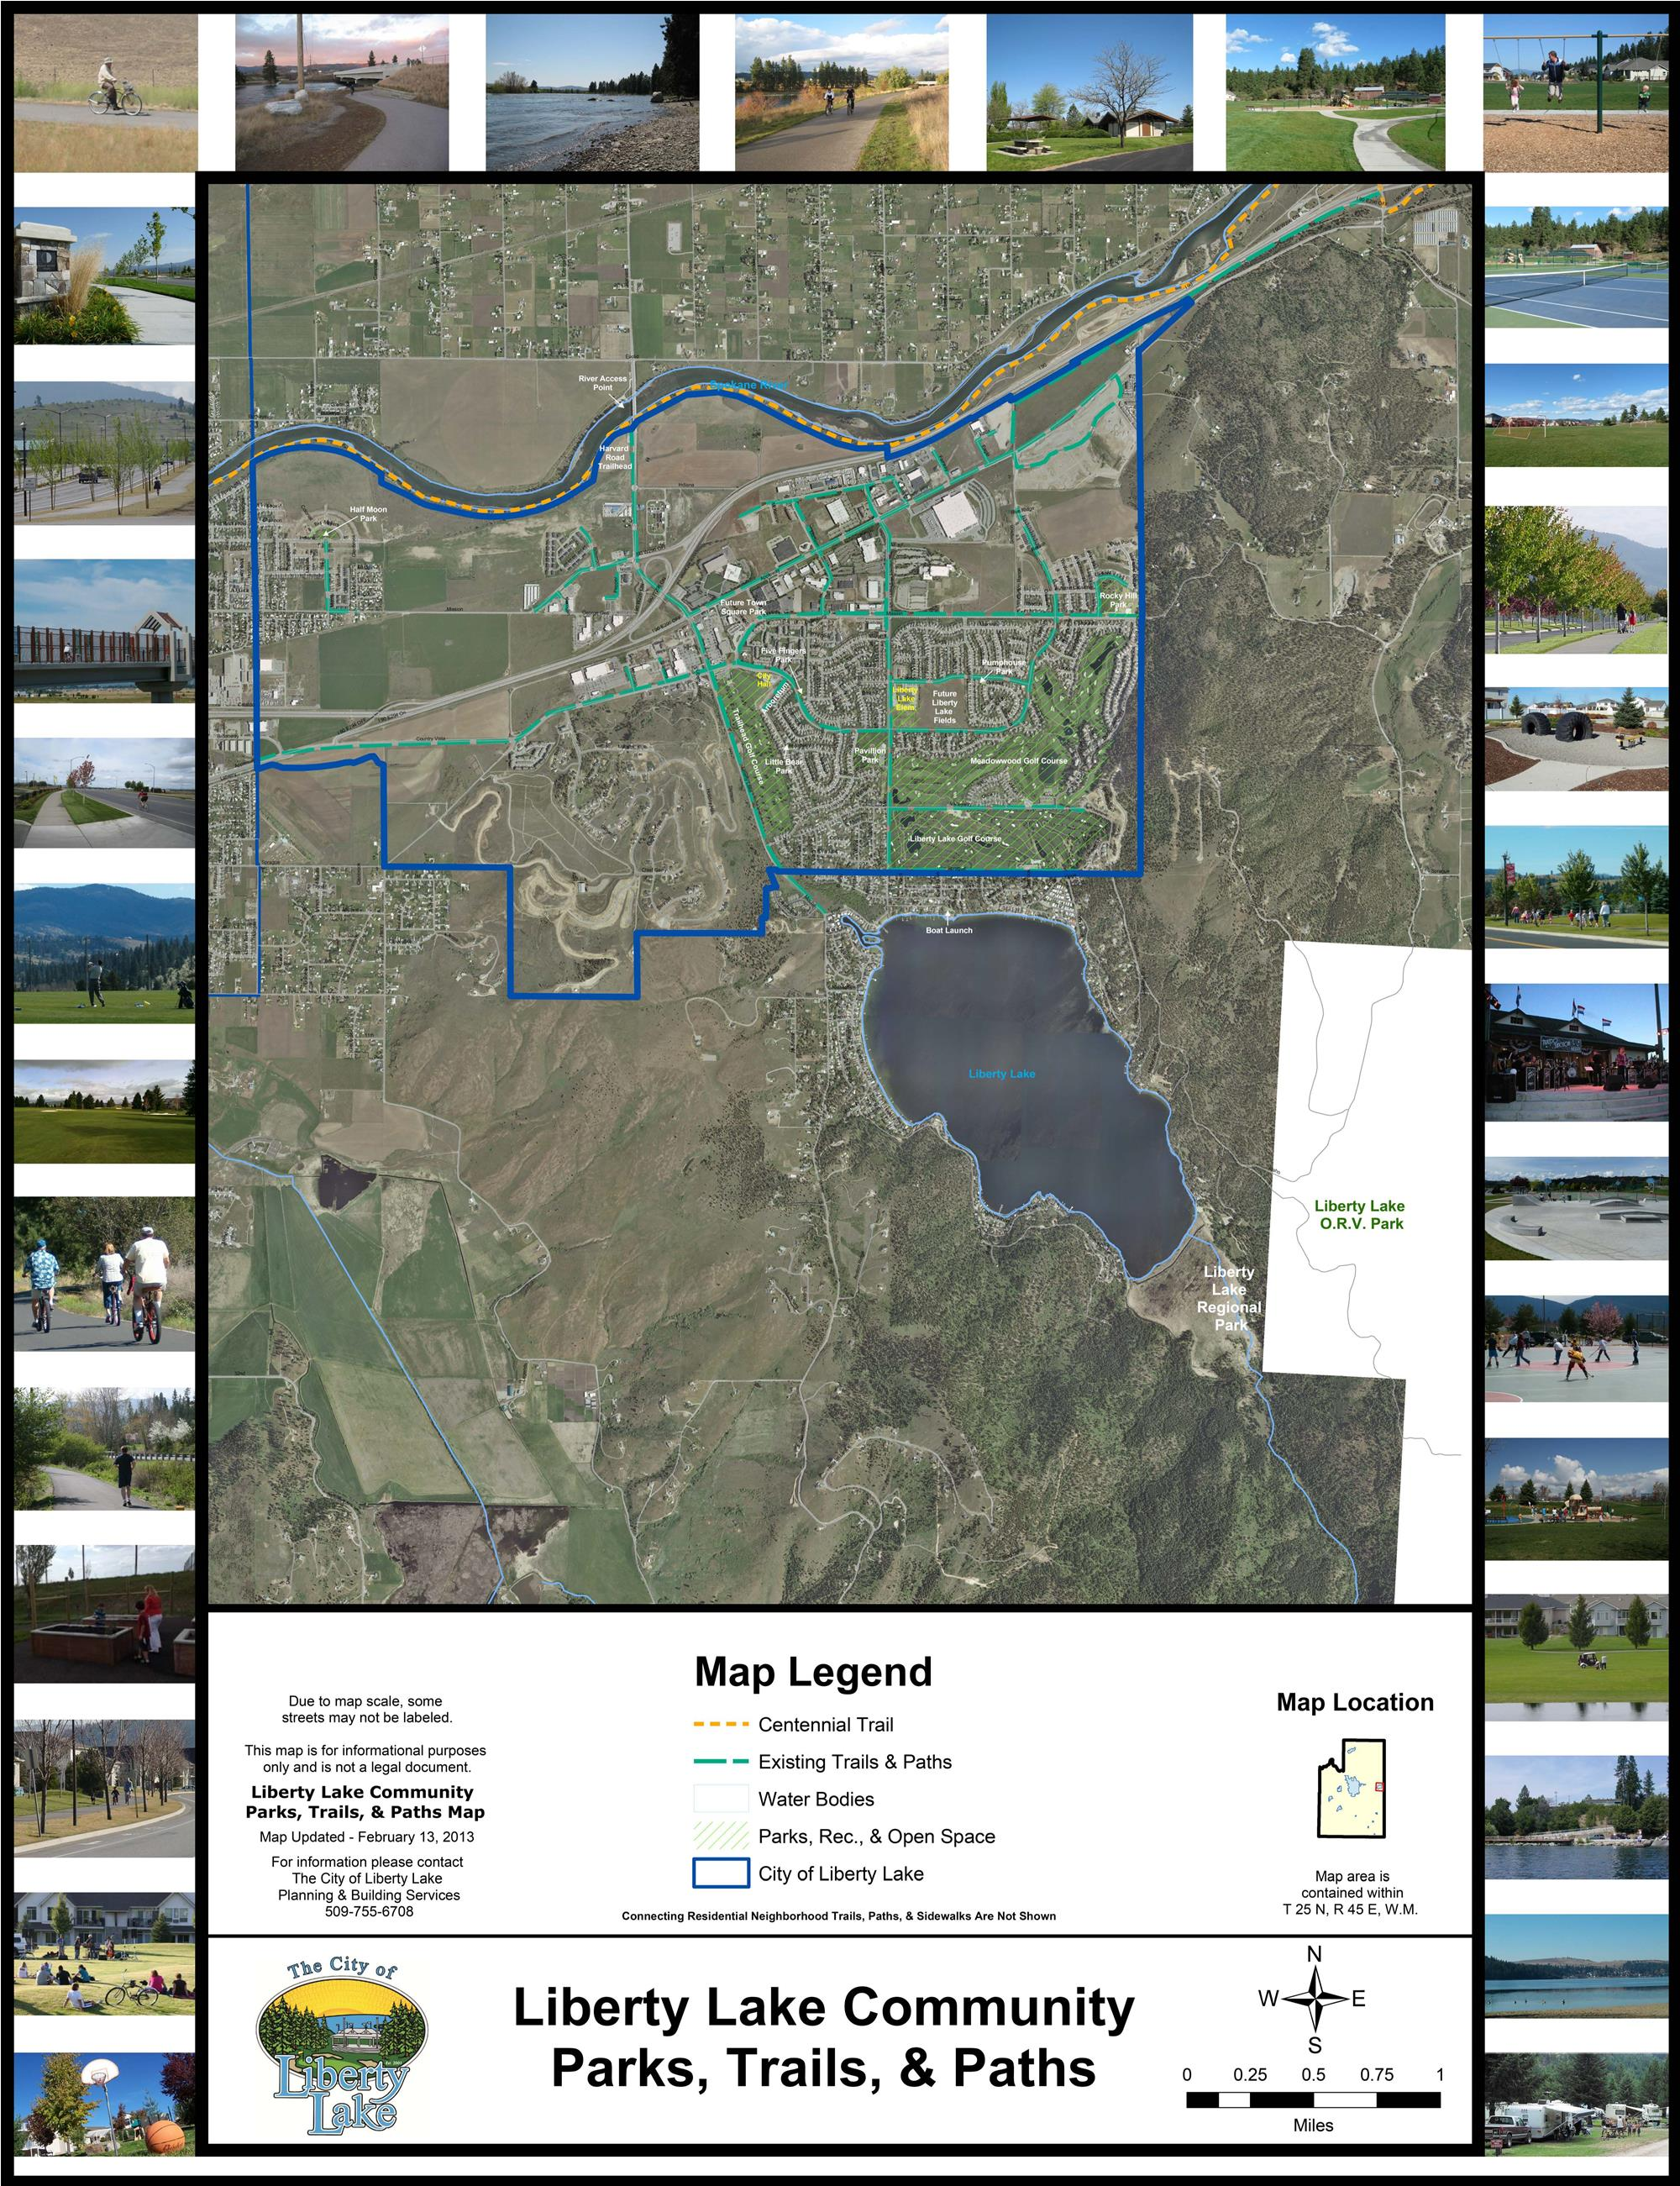 Liberty Lake Parks, Trails, and Paths with Pictures